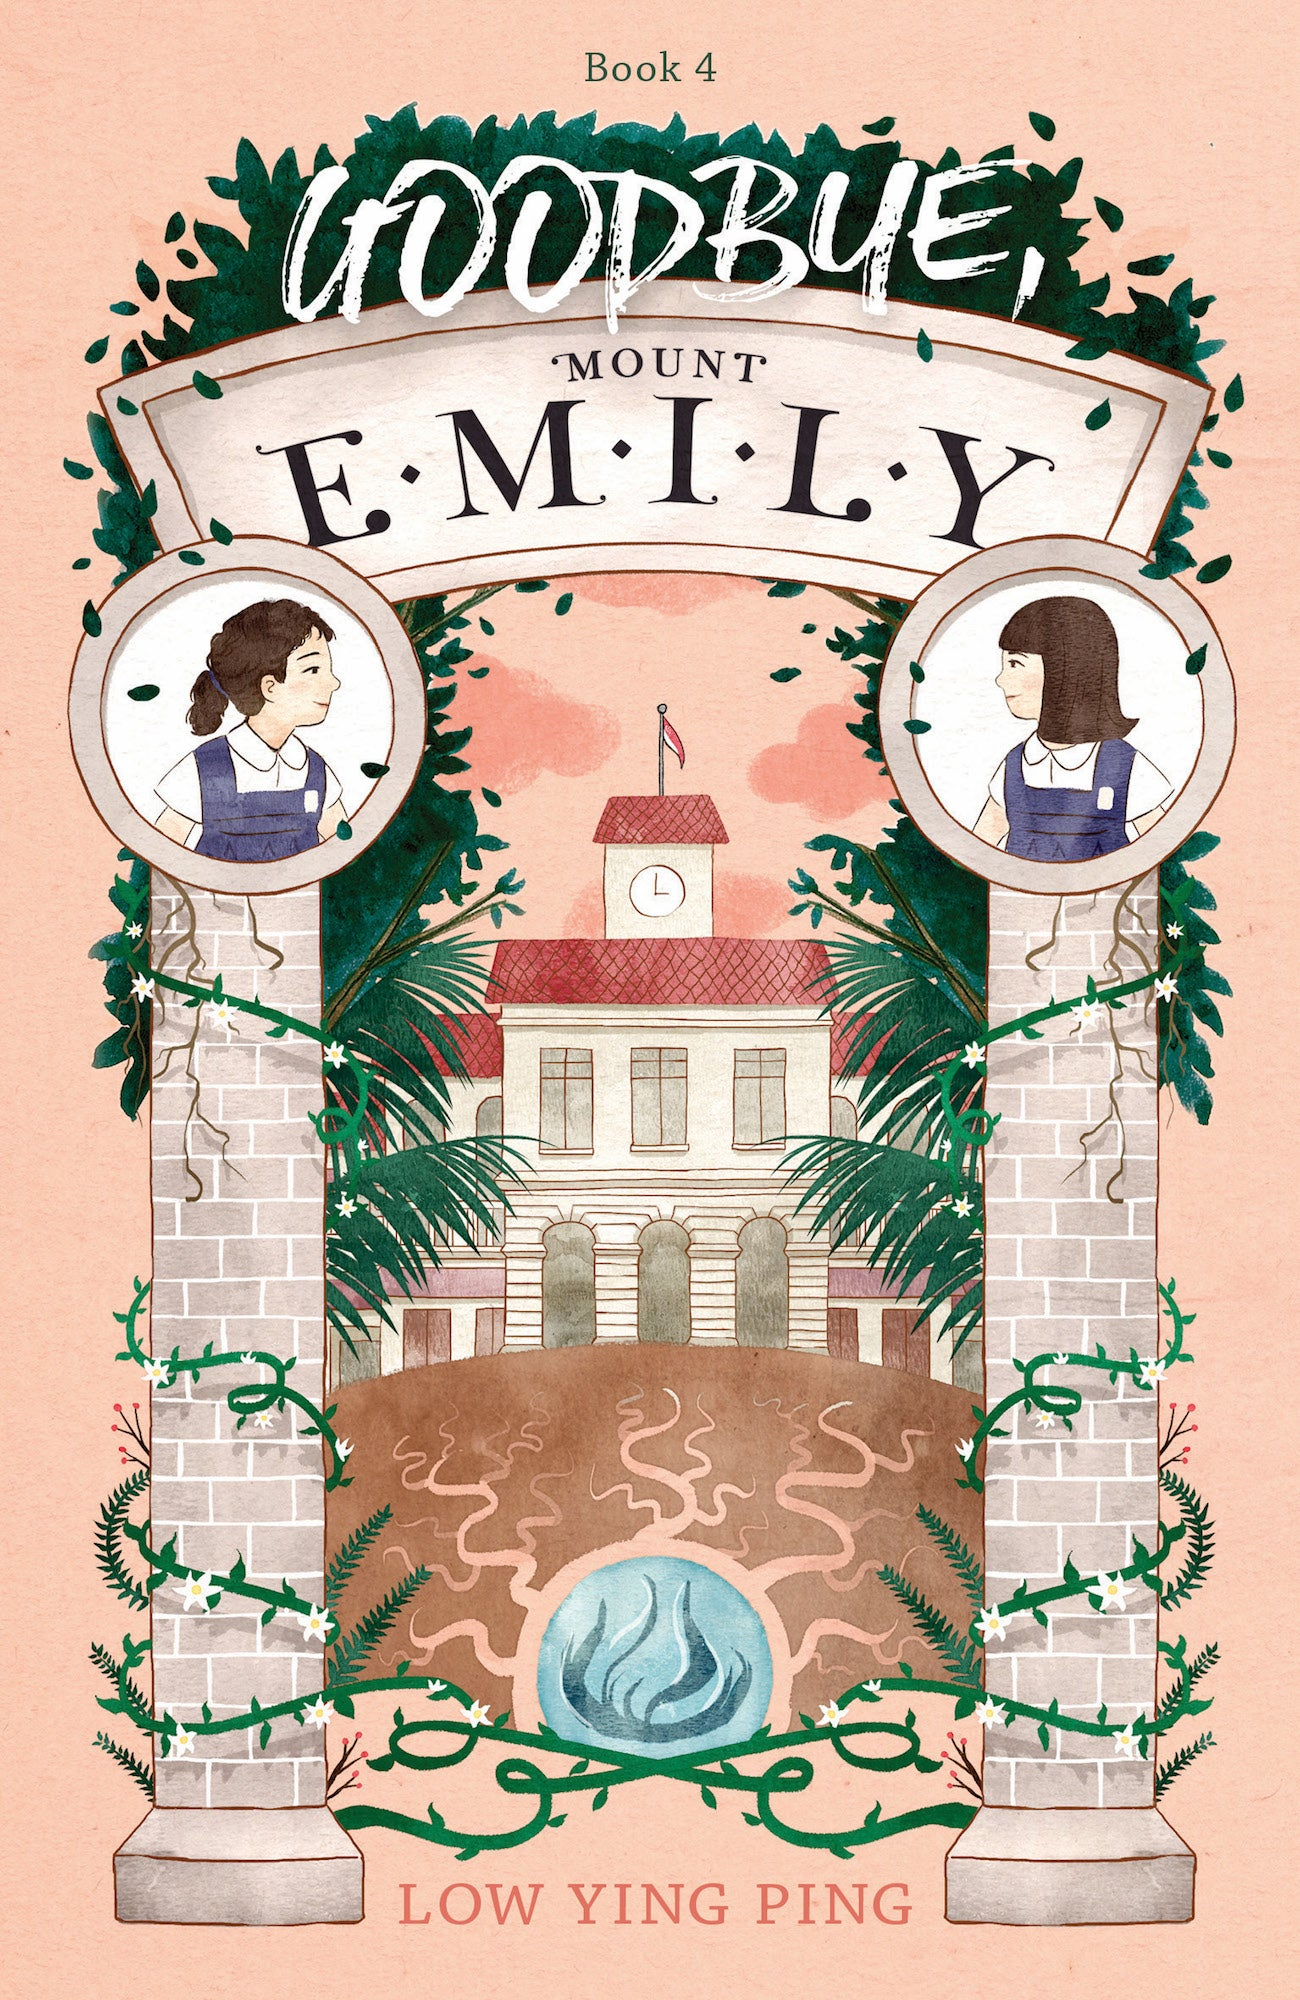 Goodbye, Mount Emily (book 4)